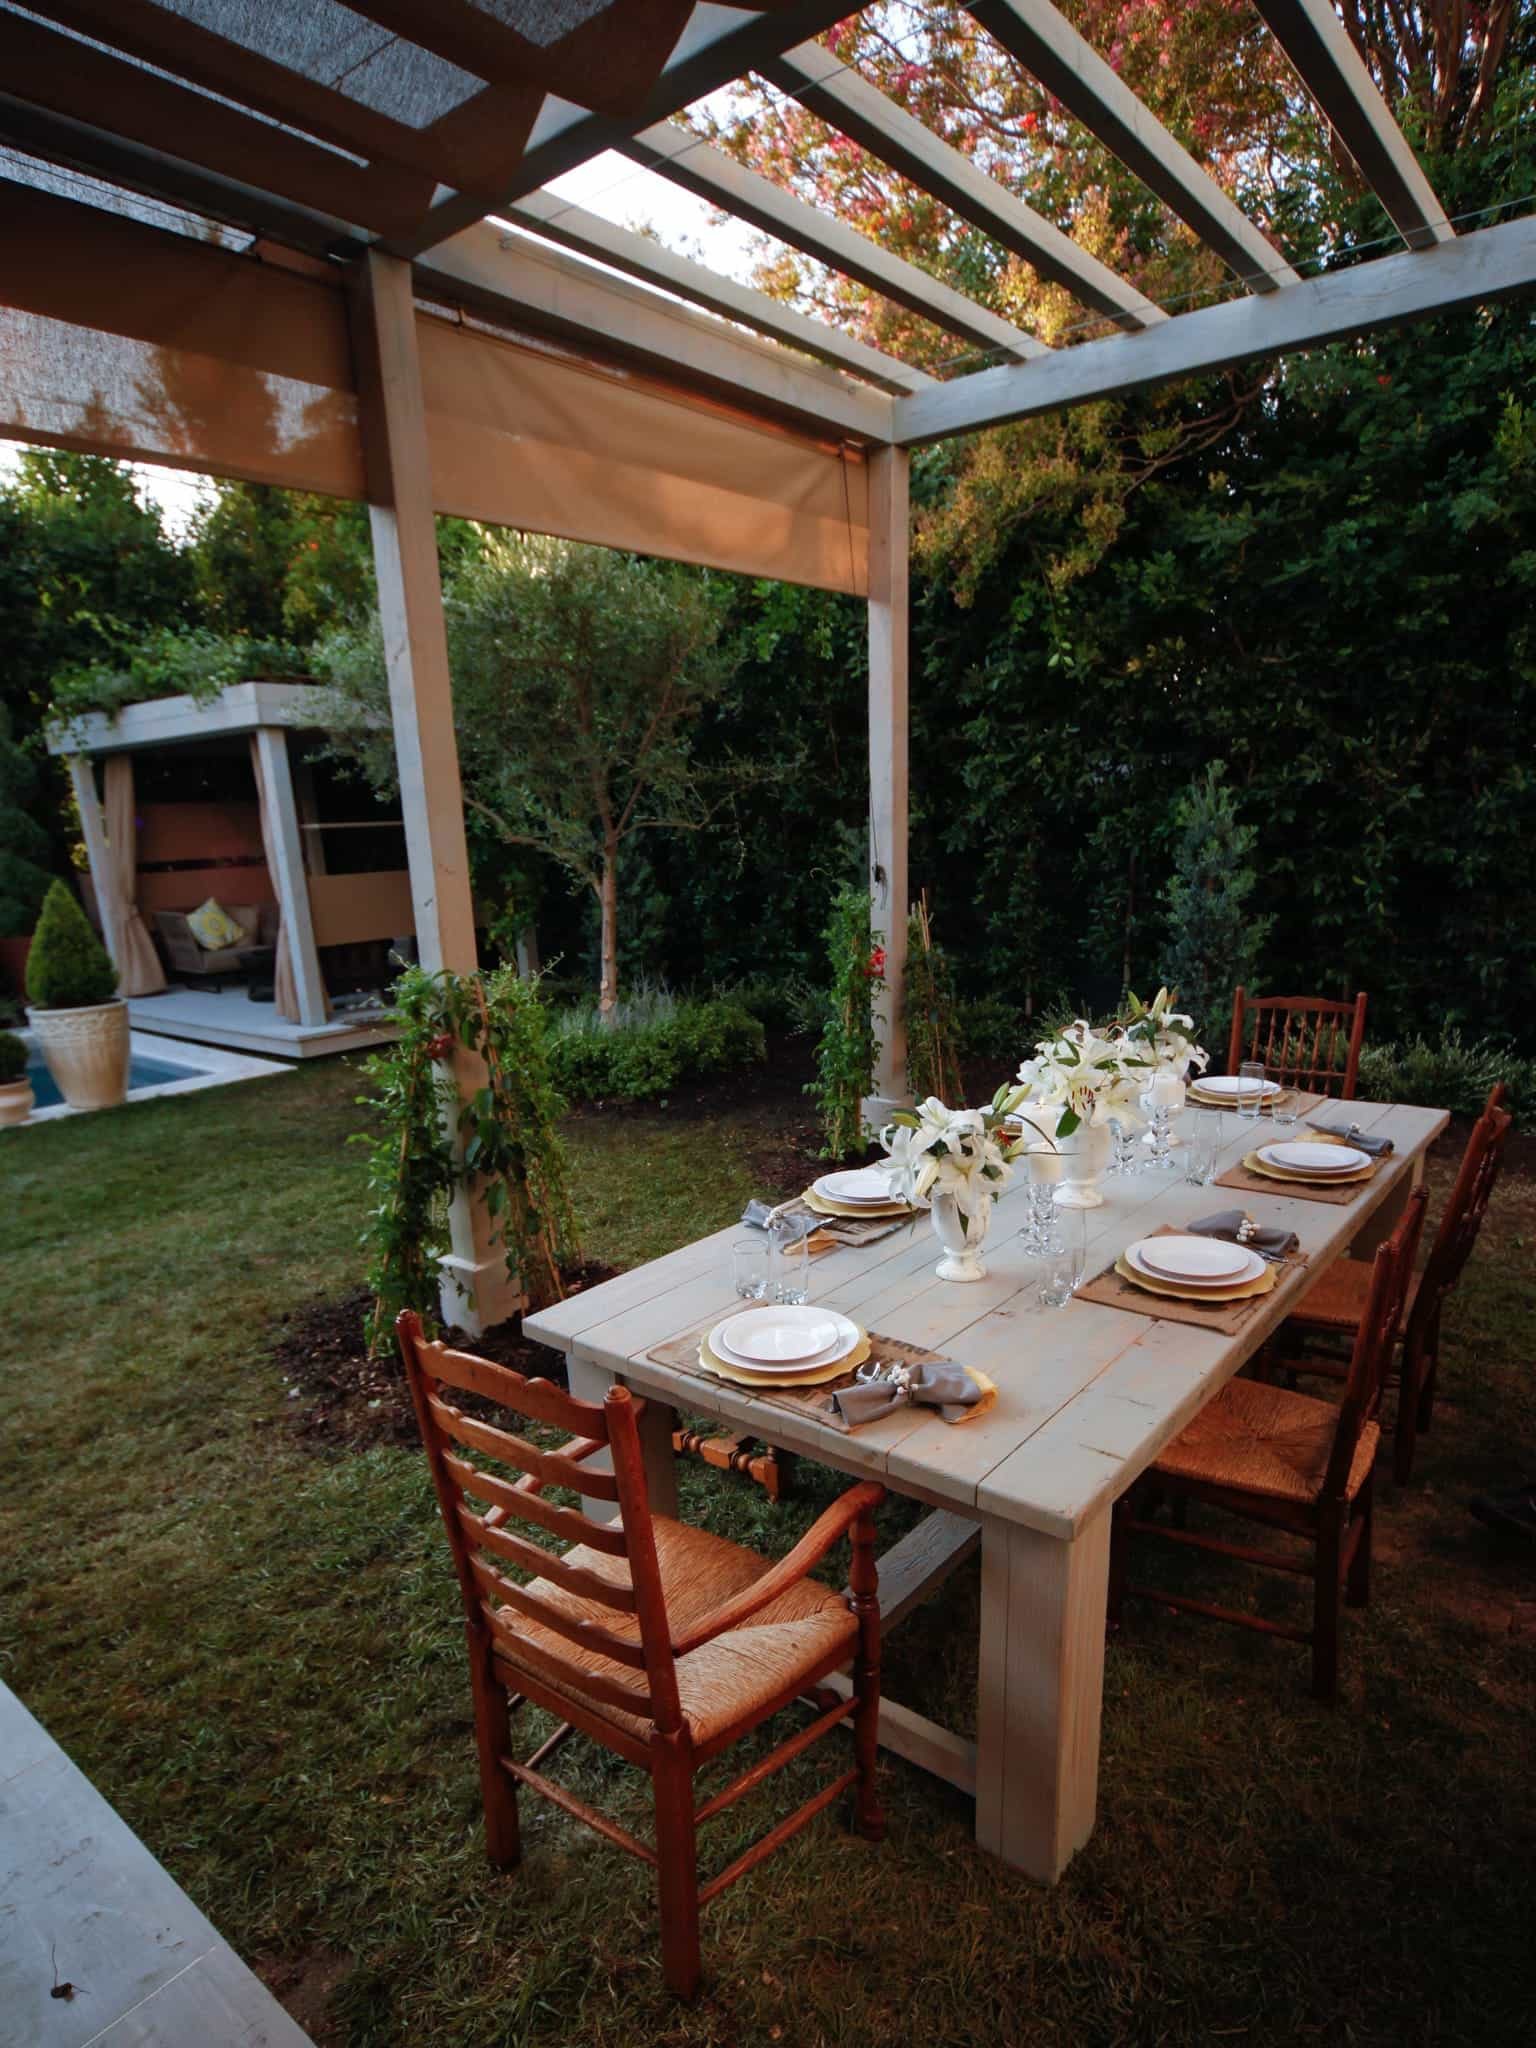 European Style Dining Table For Romantic Outdoor Dinner (Image 3 of 8)